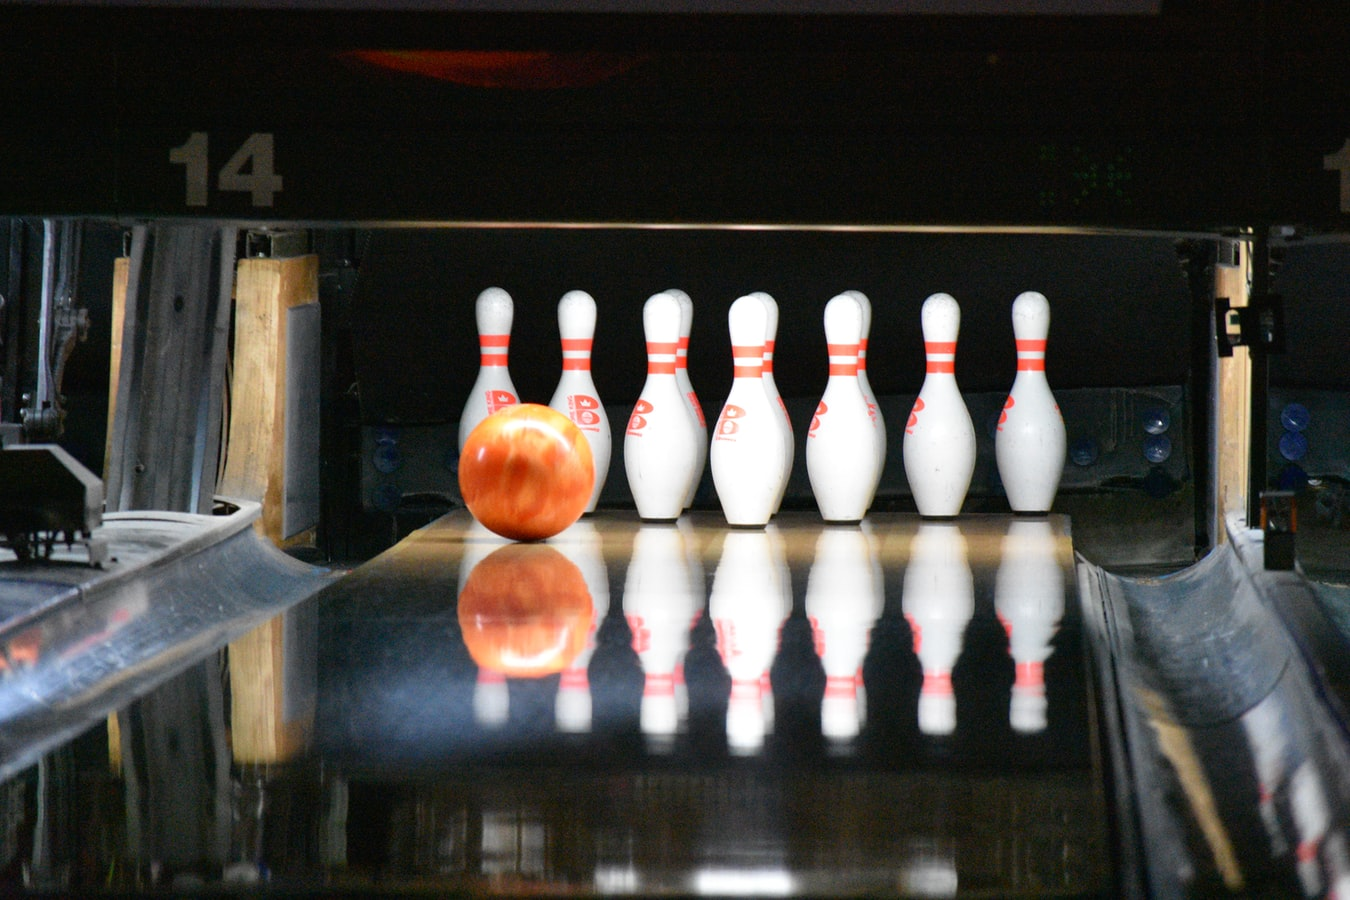 Orange bowling ball about to connect with pins at bowling alley